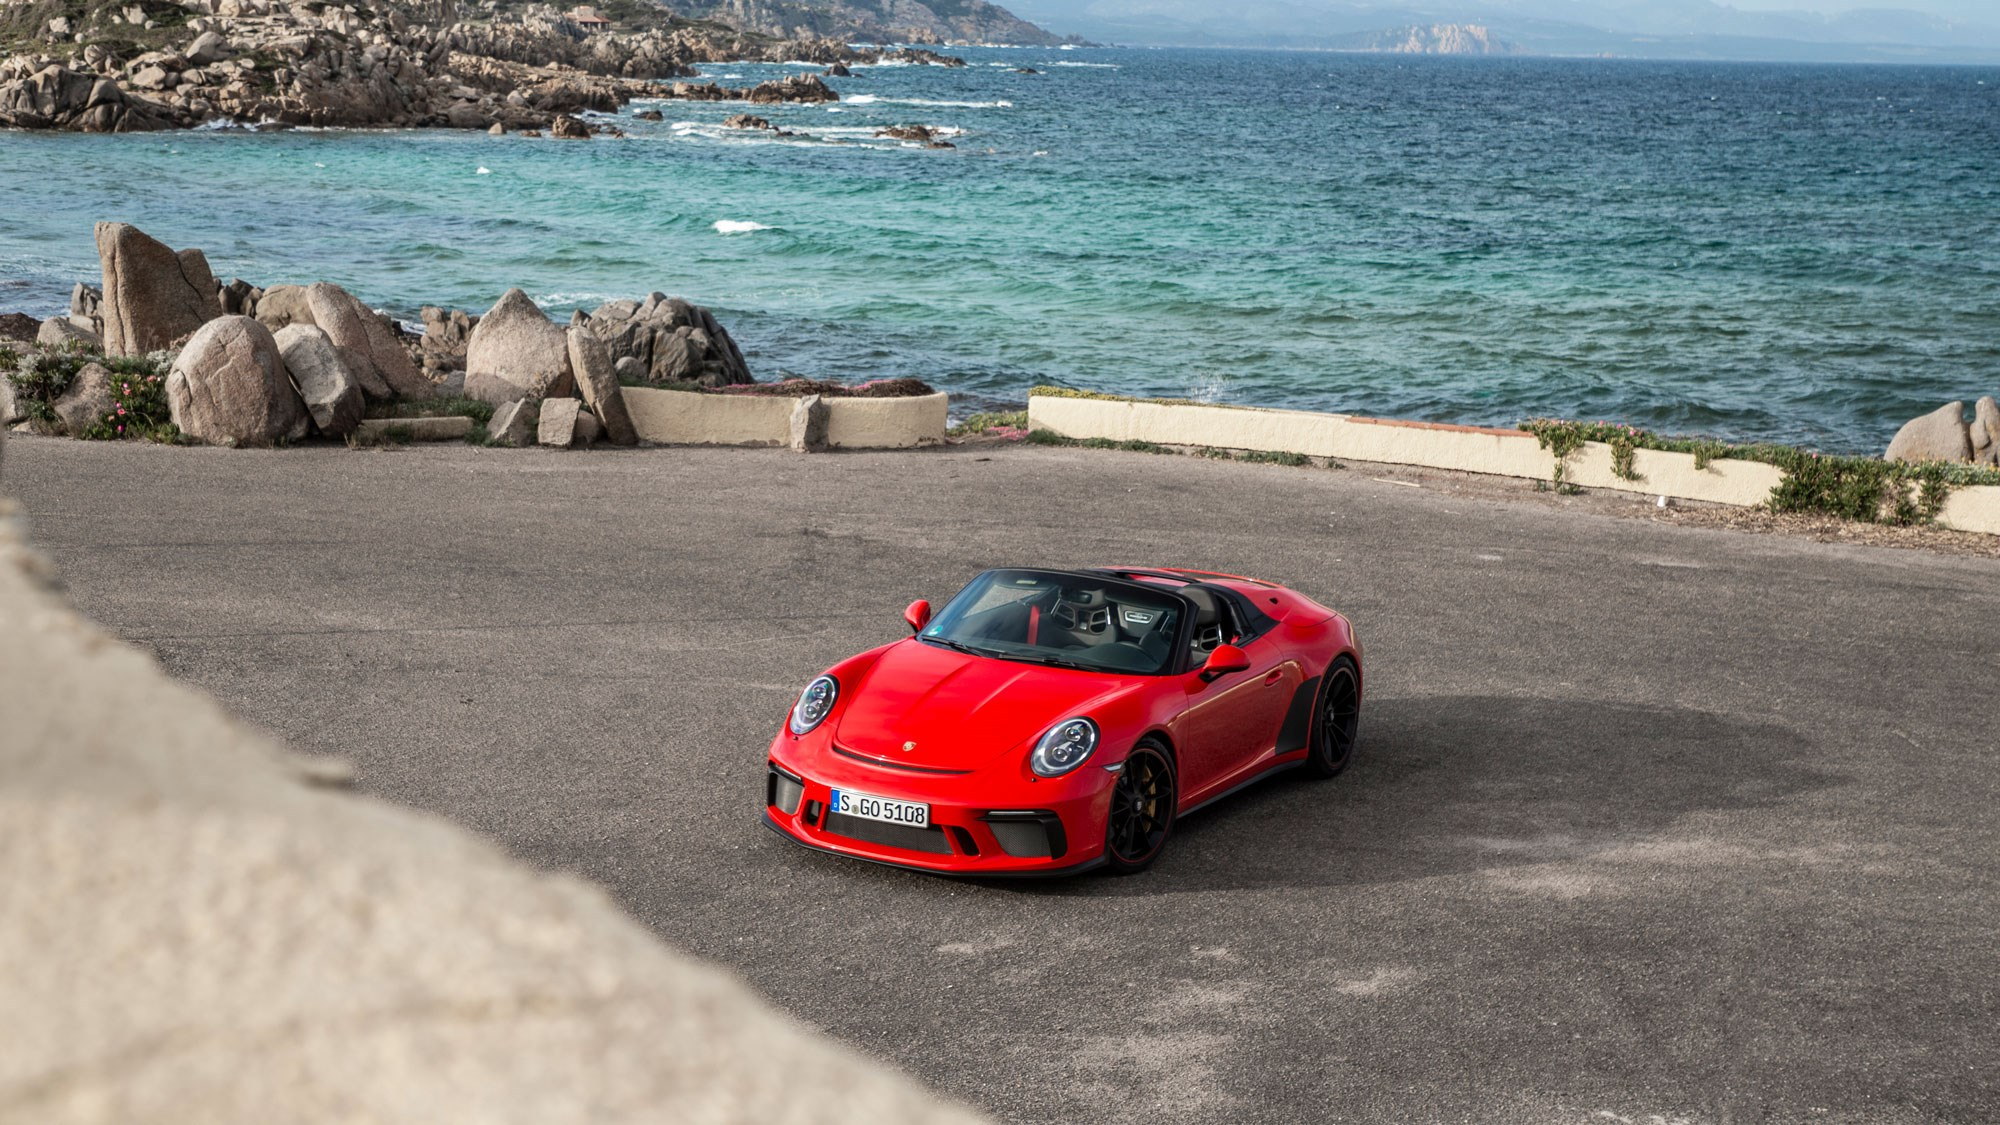 The 991.2 Speedster verdict by CAR magazine